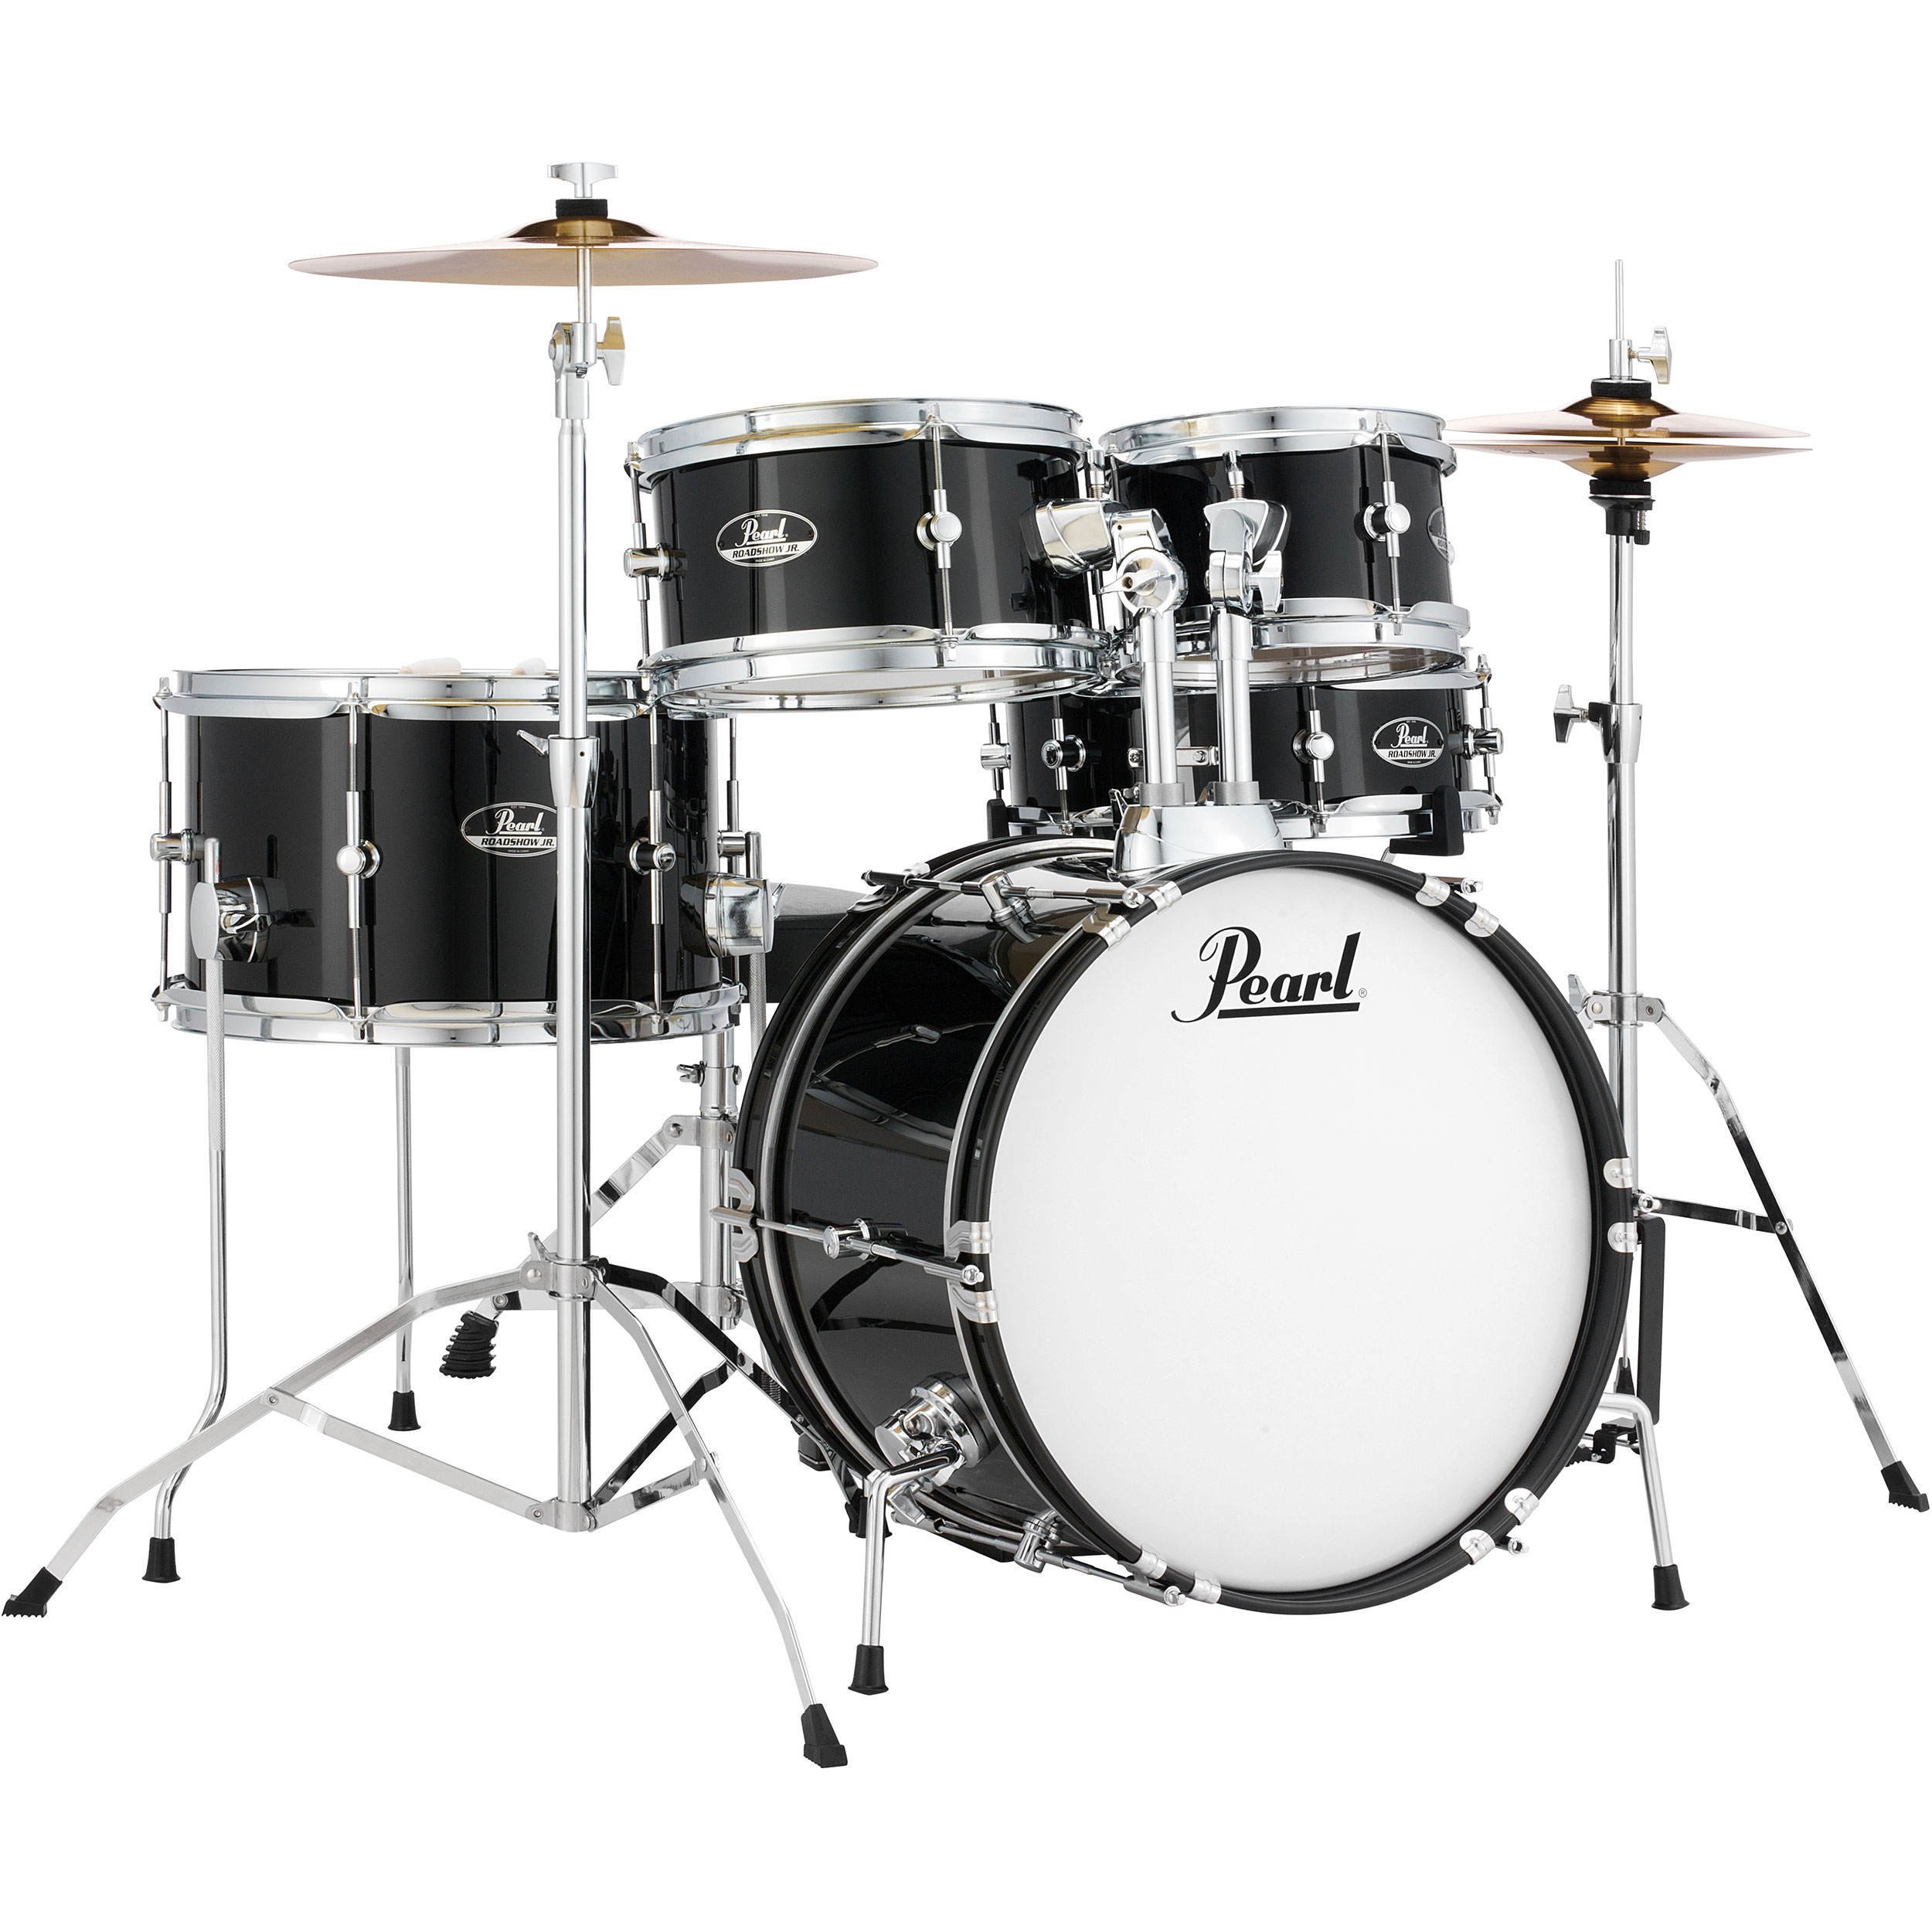 pearl roadshow jr 5 piece drum set with hardware and cymbals 16 bass 8 10 13 toms 12 snare. Black Bedroom Furniture Sets. Home Design Ideas